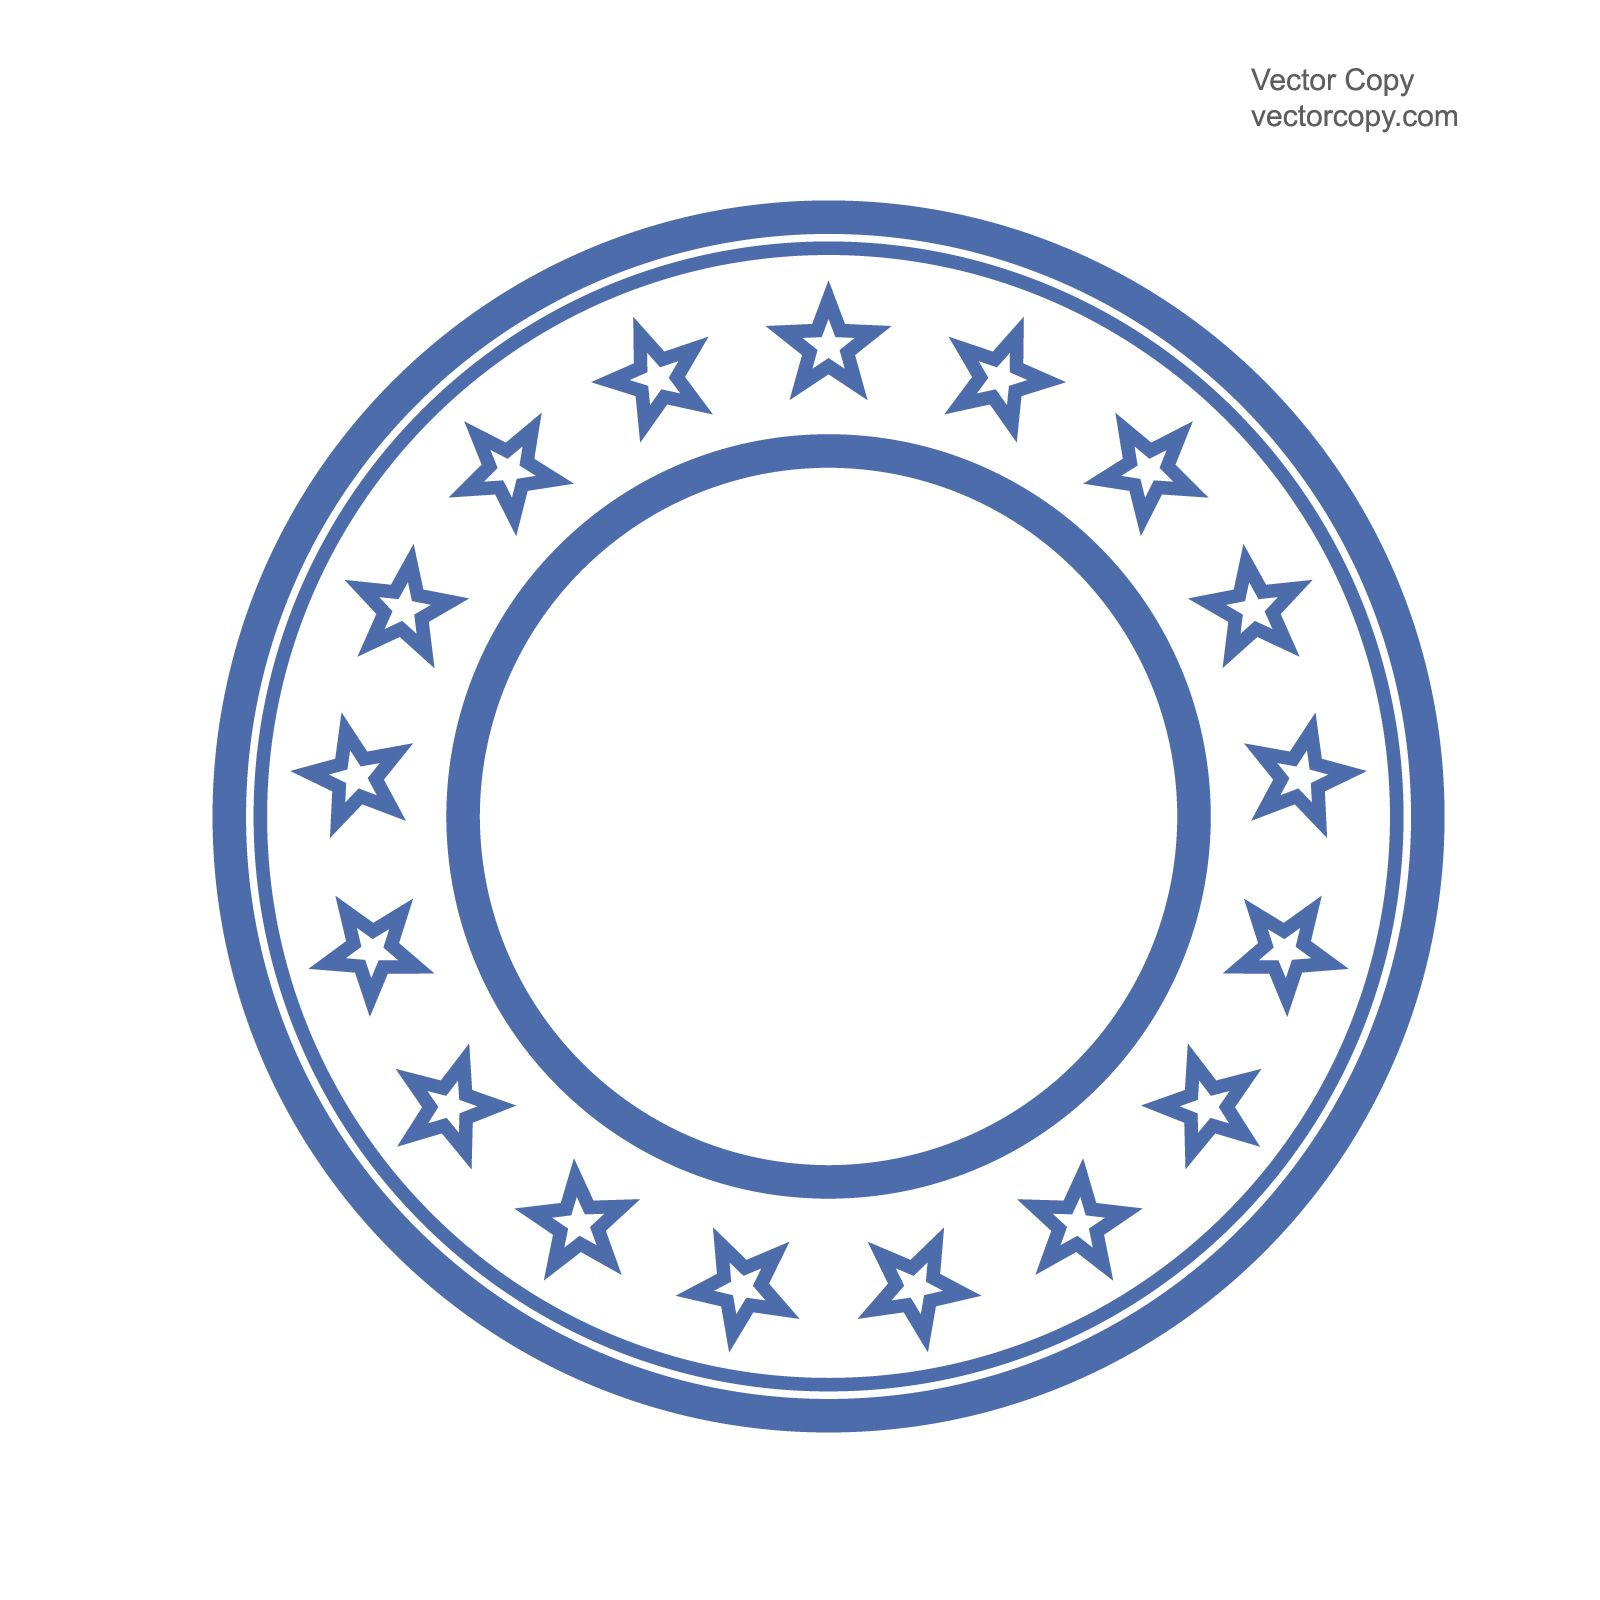 Stamp clipart round. Blank template of free